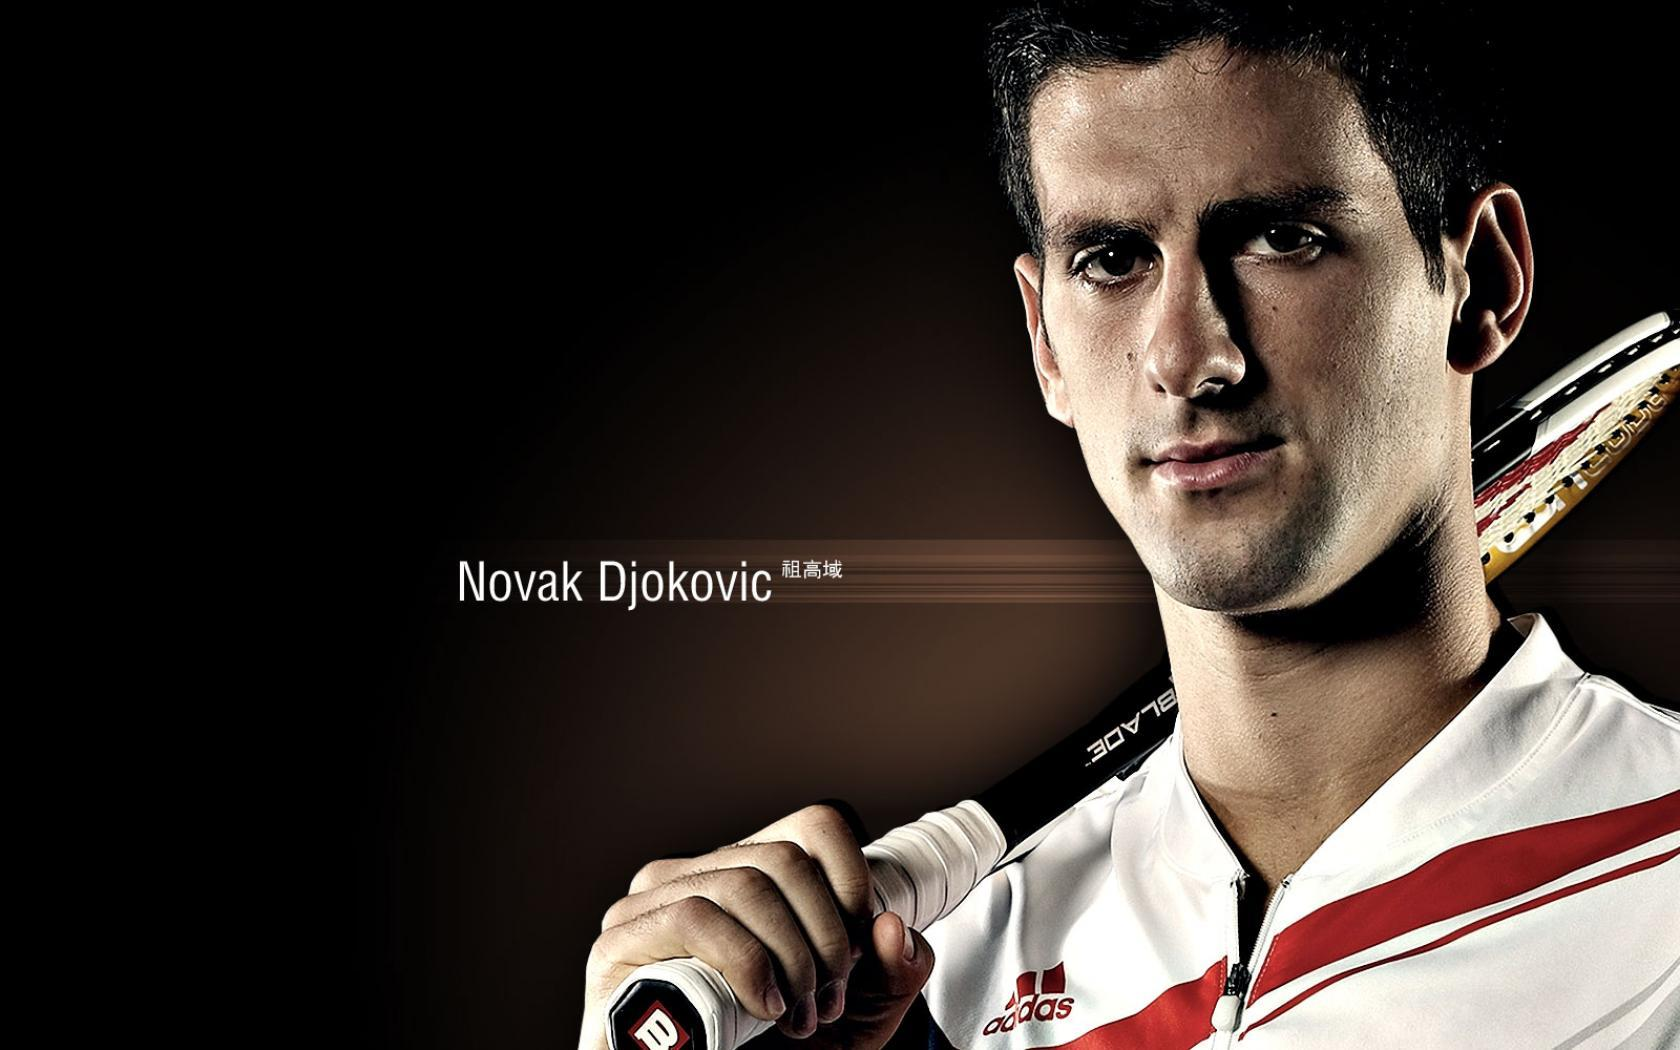 Novak Djokovic Wallpapers Wallpaper Cave